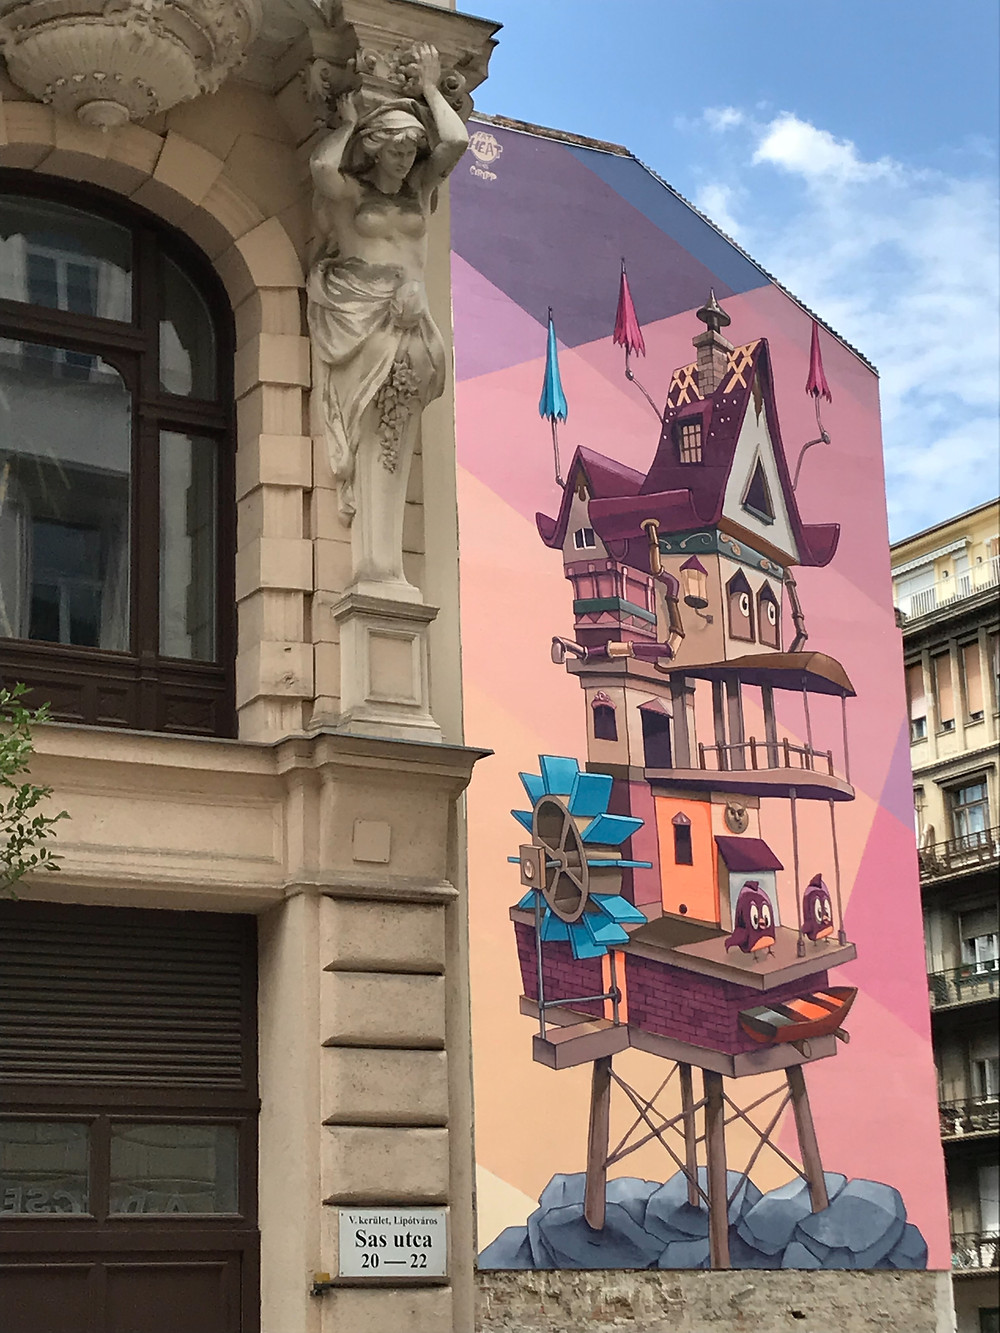 Amazing Mural Painting in Budapest: Living Space | Artist: Fat Heat and Bea Pántya | Location: Arany János/ Sas utca 20-22